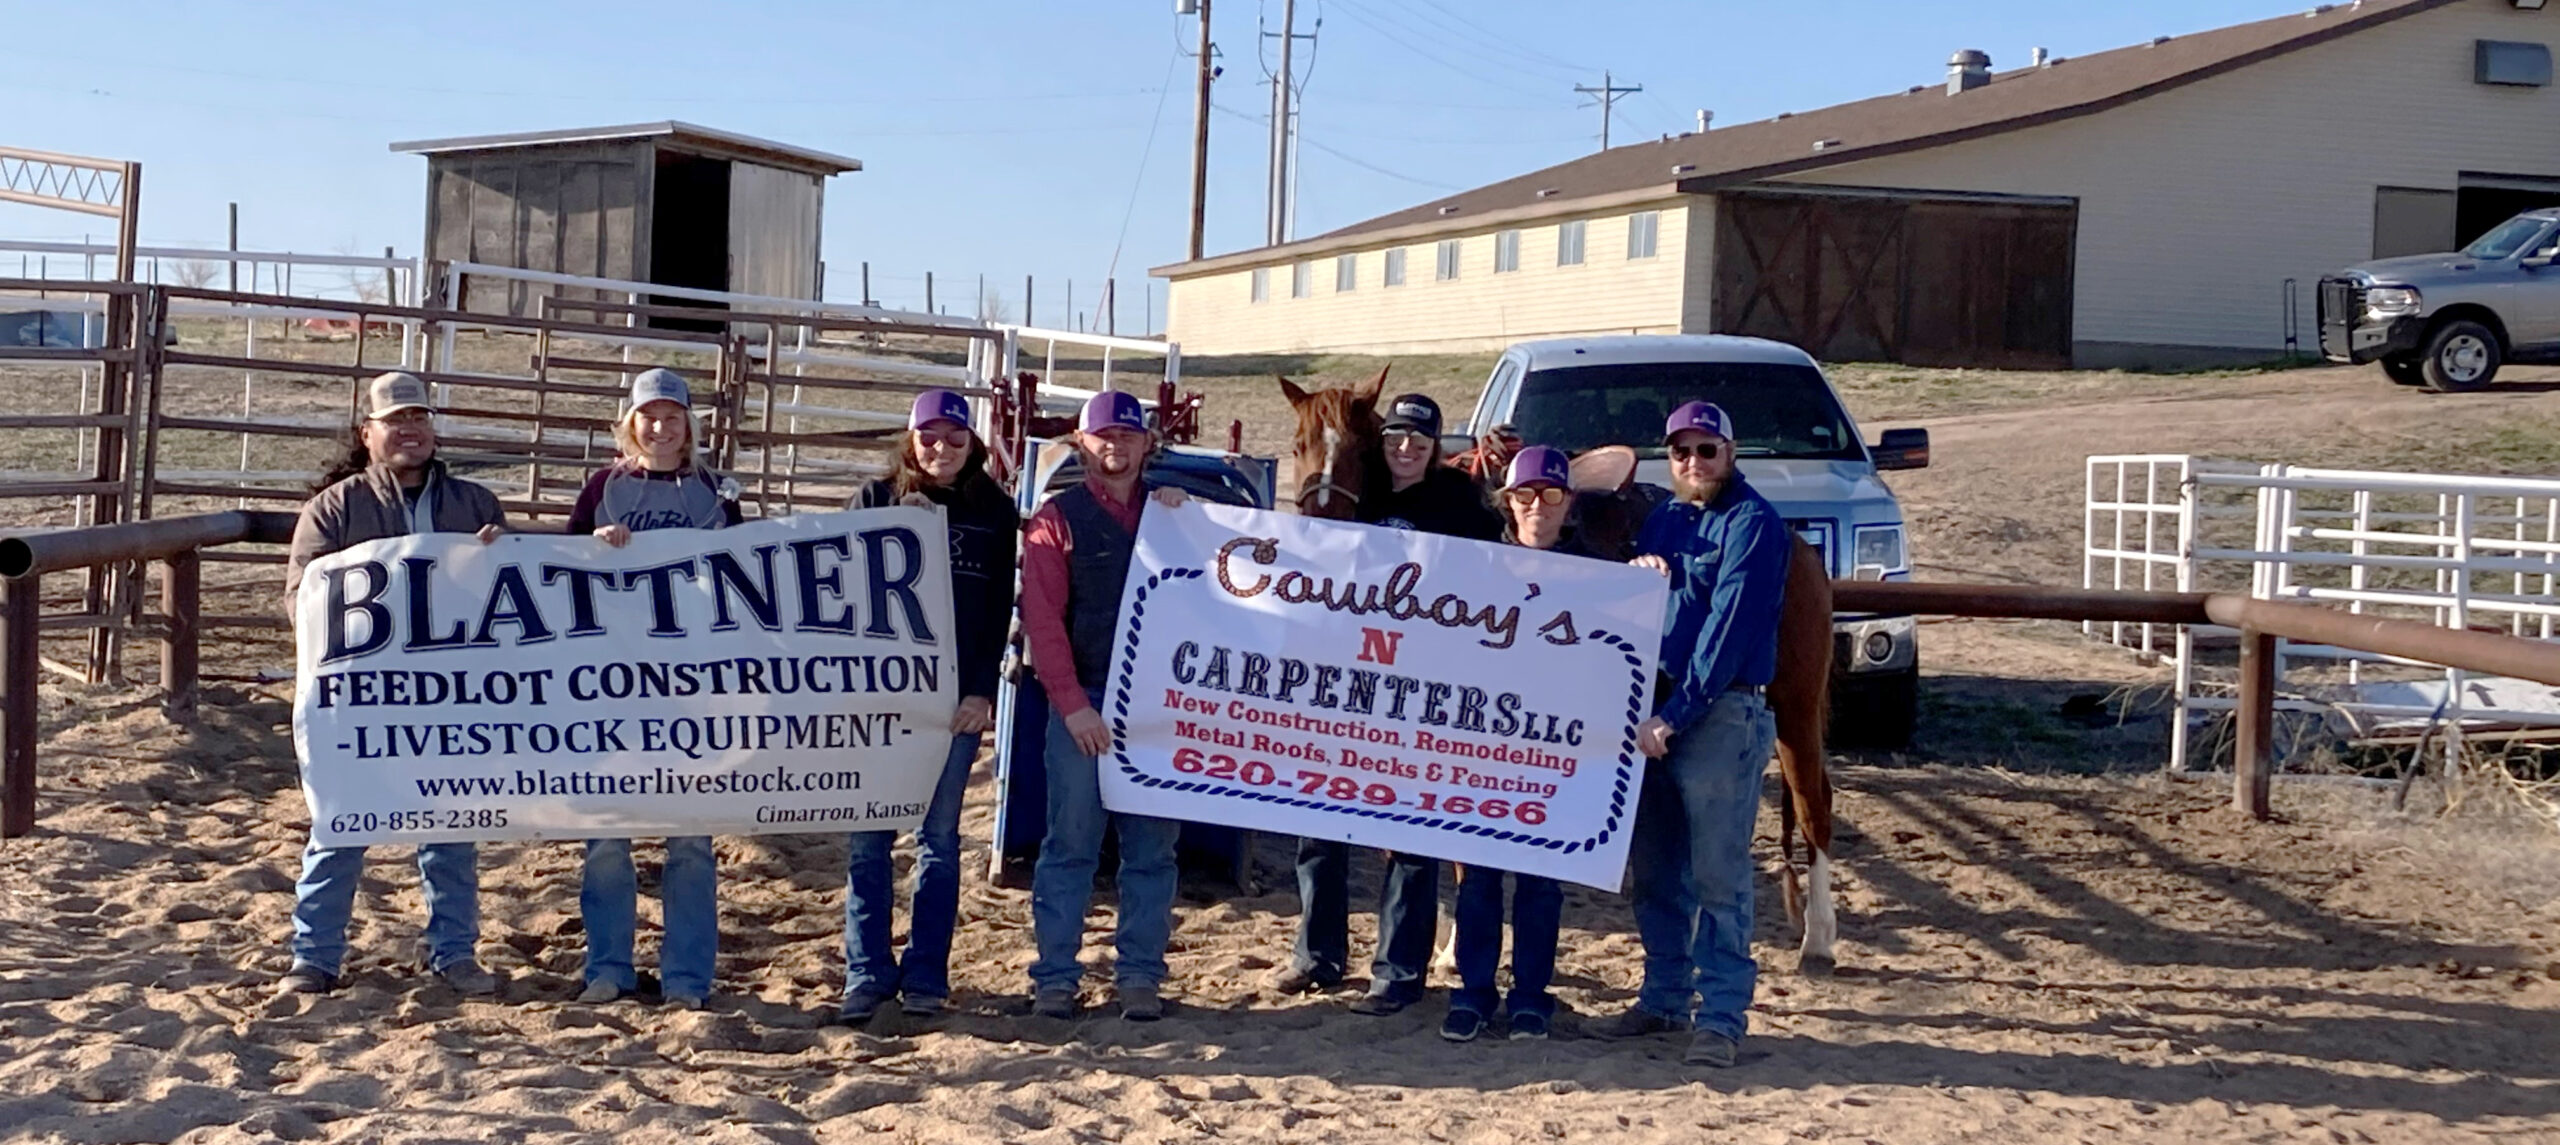 Members of the DC3 rodeo team pose with banners representing two of the three donors who provided the new roping boxes at the DC3 Rodeo Practice Arena. The area businesses involved with the project were Blattner Feedlot Construction & Livestock Equipment, Cowboys 'N' Carpenters LLC and Mead Lumber. [Photo by Tyrel Moffitt].